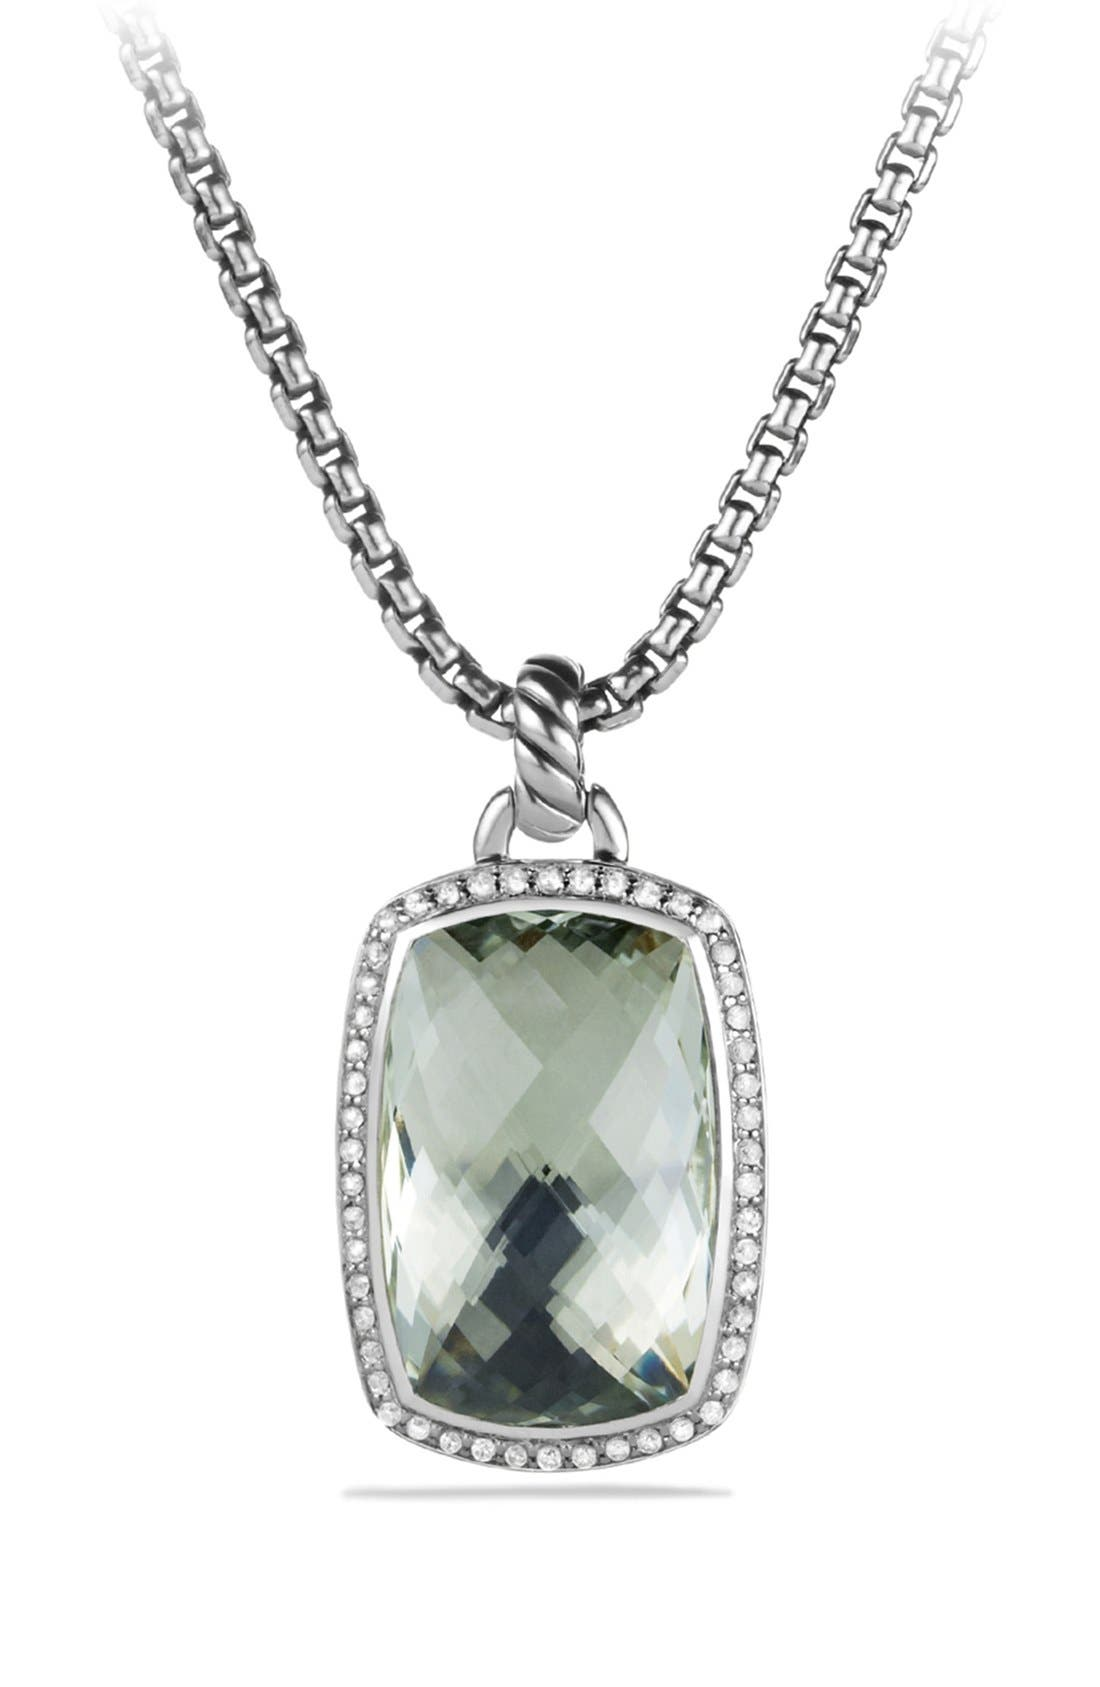 Alternate Image 1 Selected - David Yurman 'Albion' Pendant with Semiprecious Stone and Diamonds